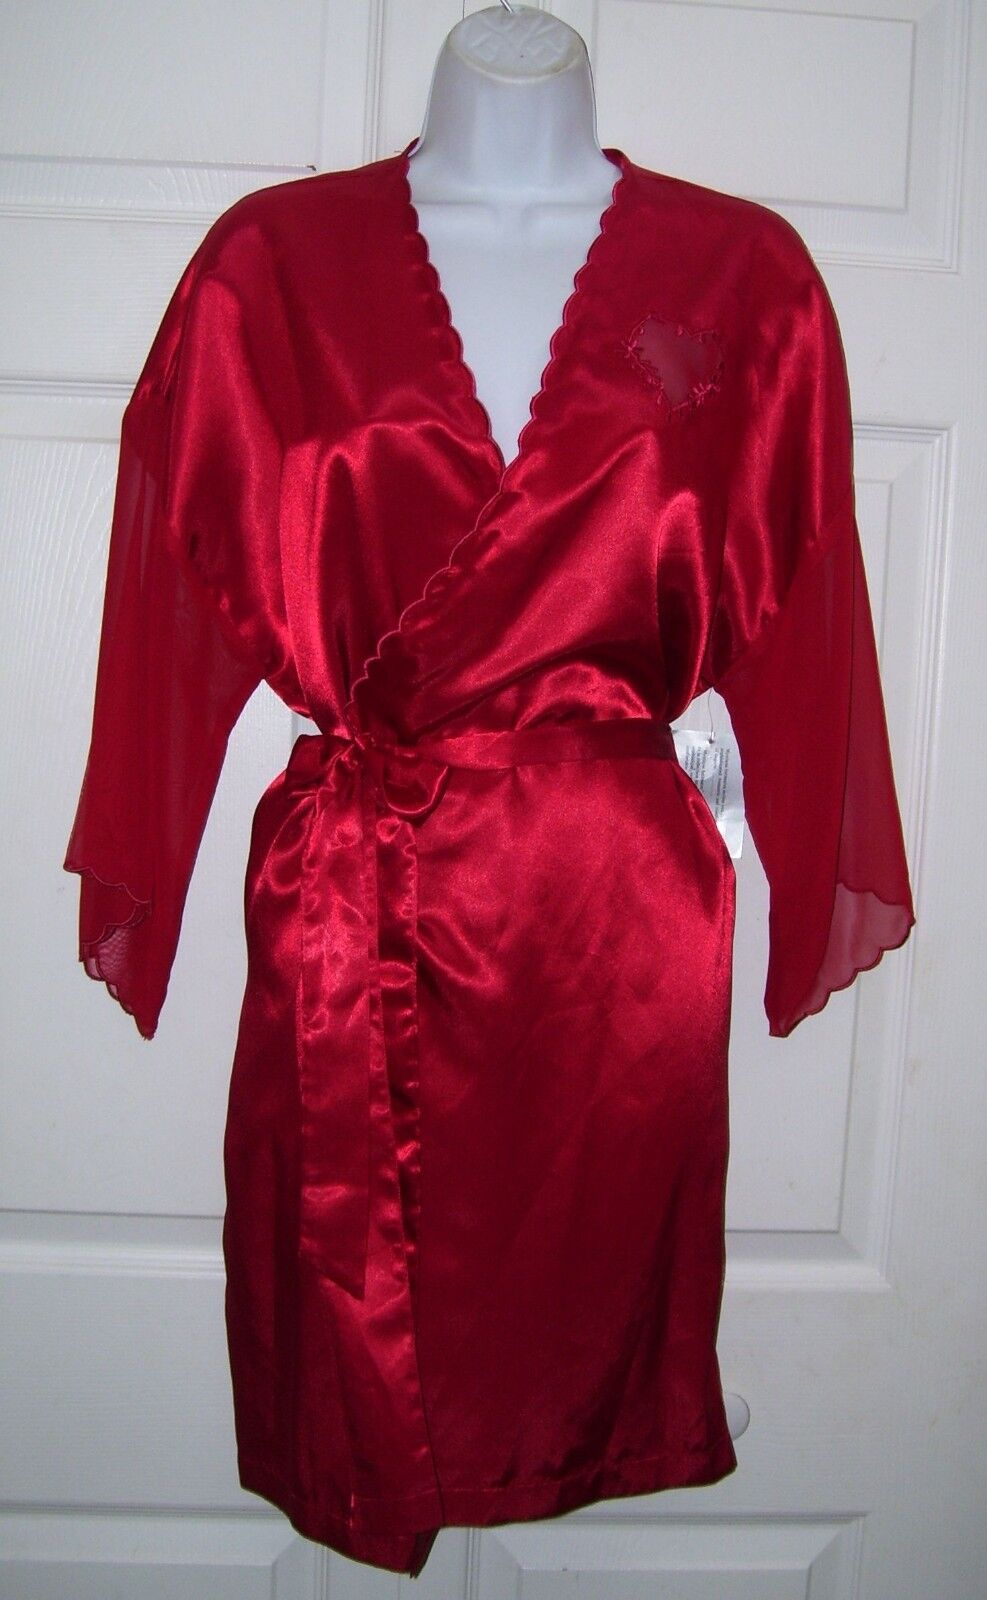 Women's One Size Red  Robe Wrap Around Heart Decal & Semi Sheer Sleeves Sale